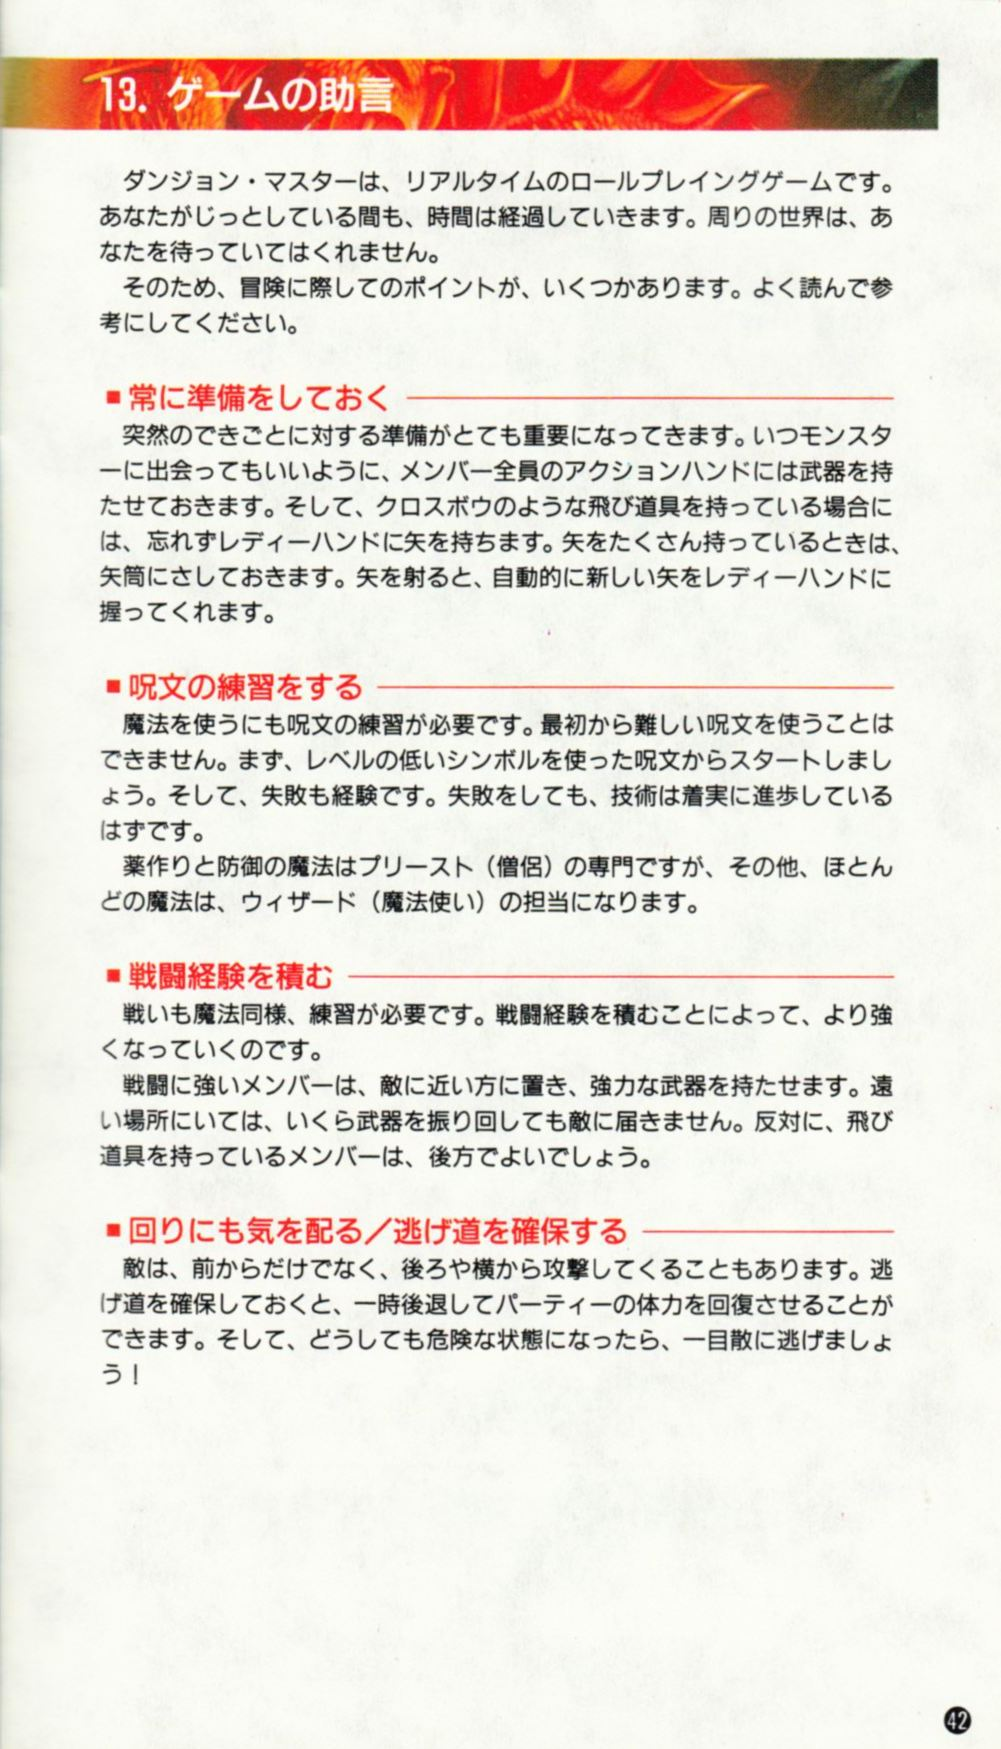 Game - Dungeon Master - JP - Super Famicom - Manual - Page 045 - Scan